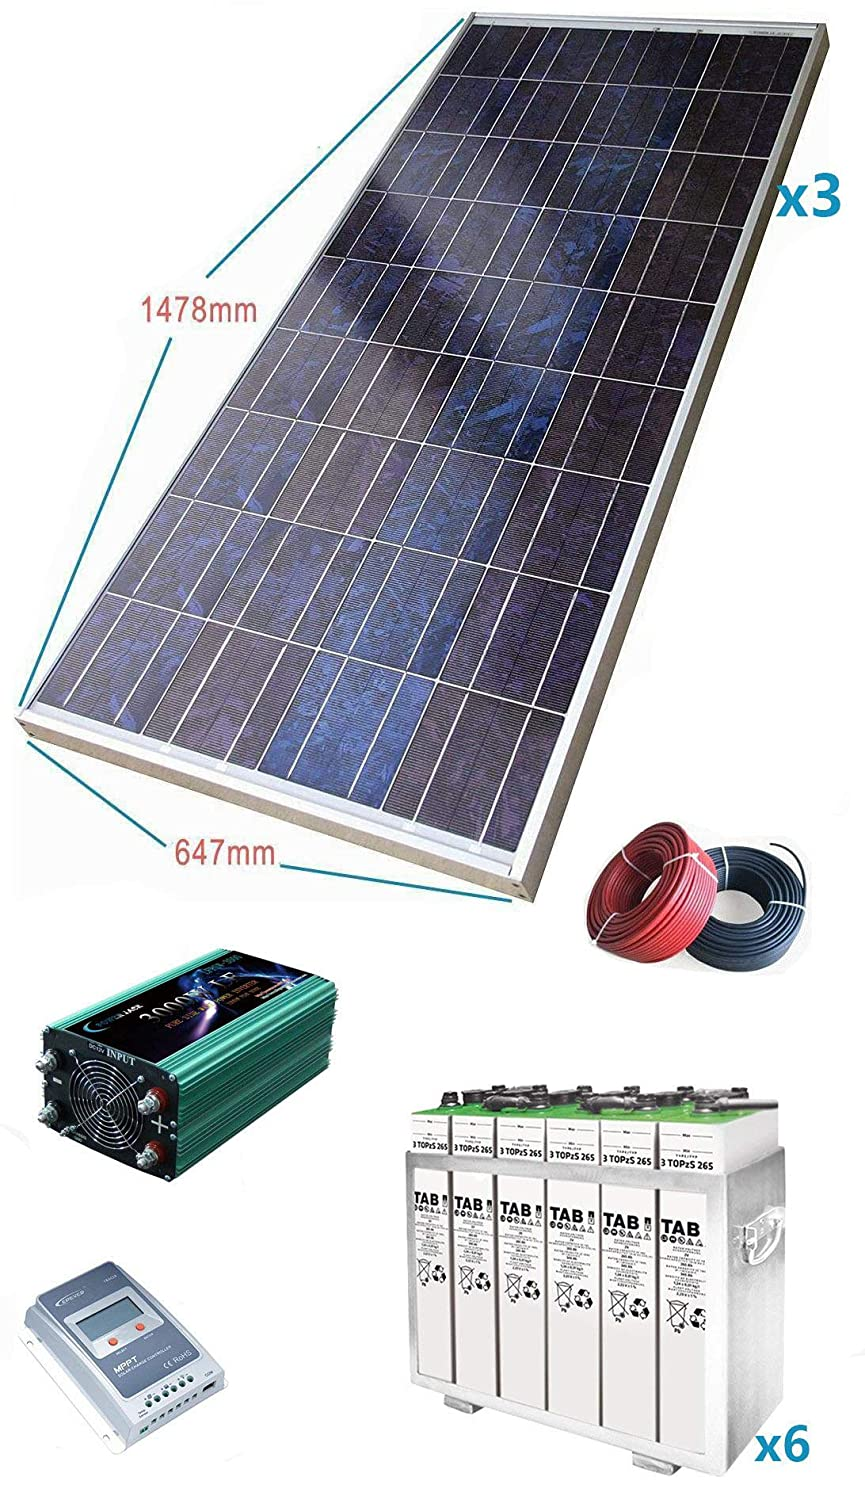 Kit Solar 12v Plus 450w Hora Inversor 3000w Opzs 2v 345AH: Amazon ...